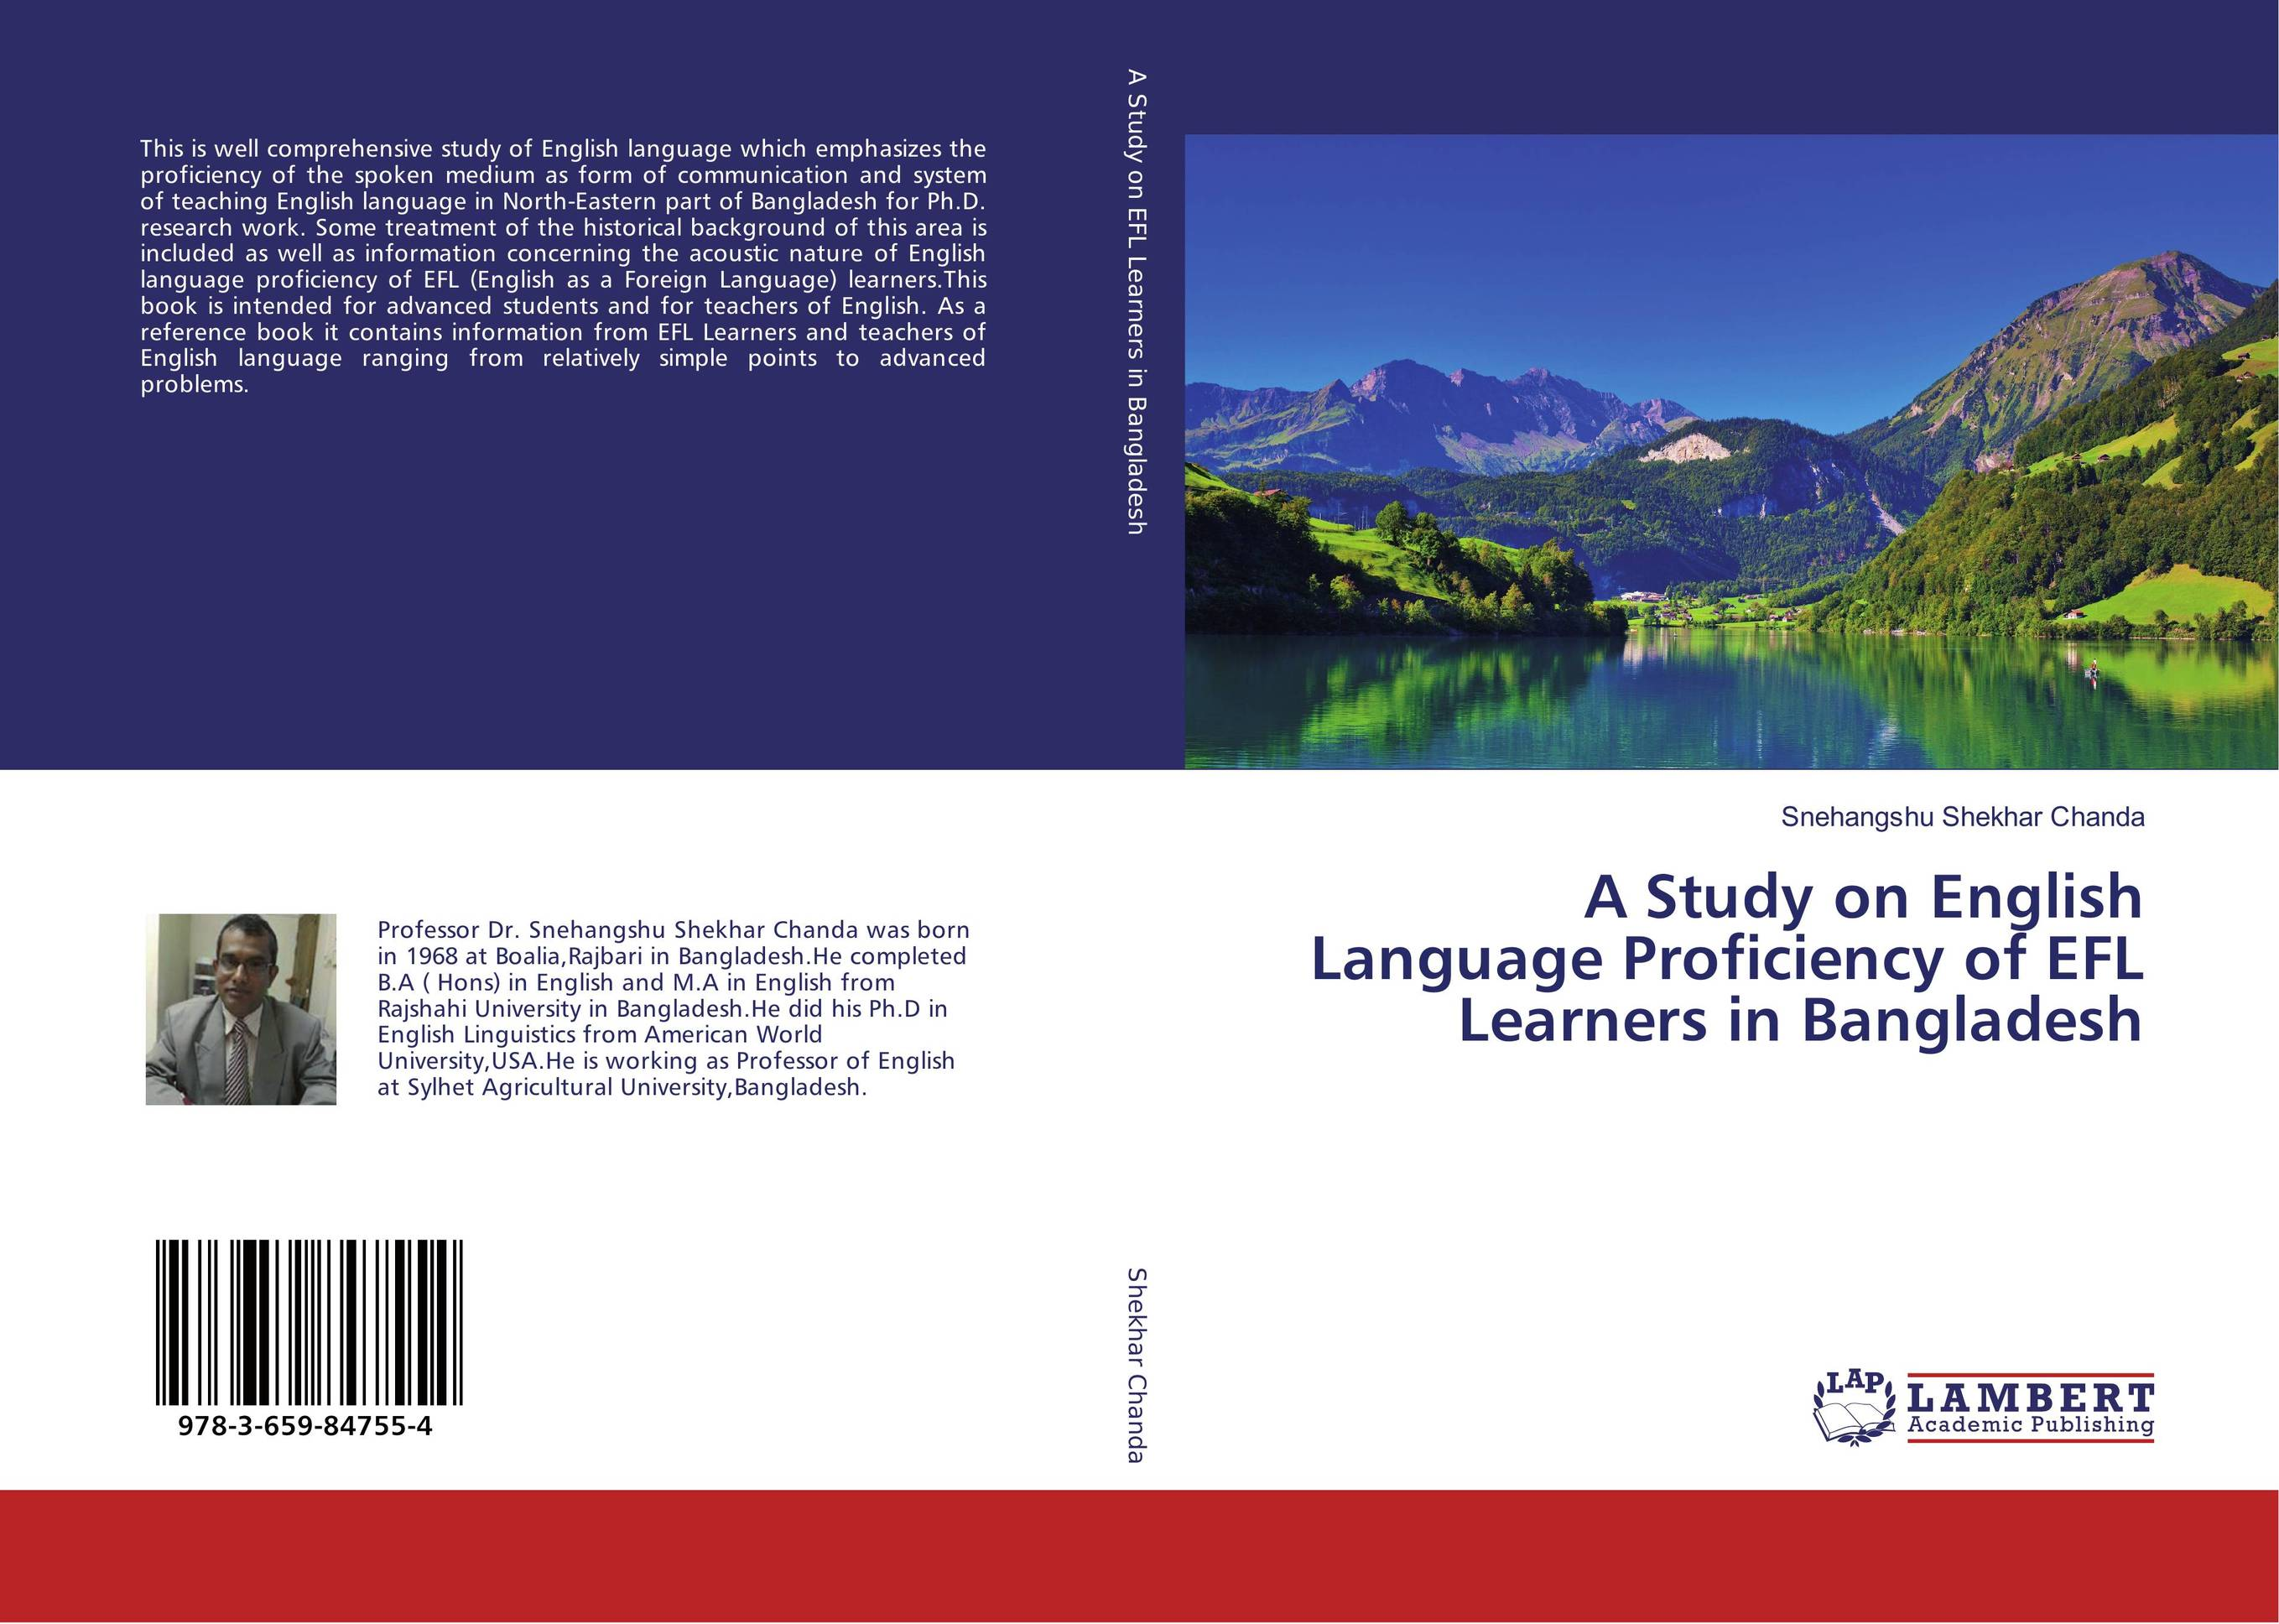 A Study on English Language Proficiency of EFL Learners in Bangladesh эра lm 8 840 с1